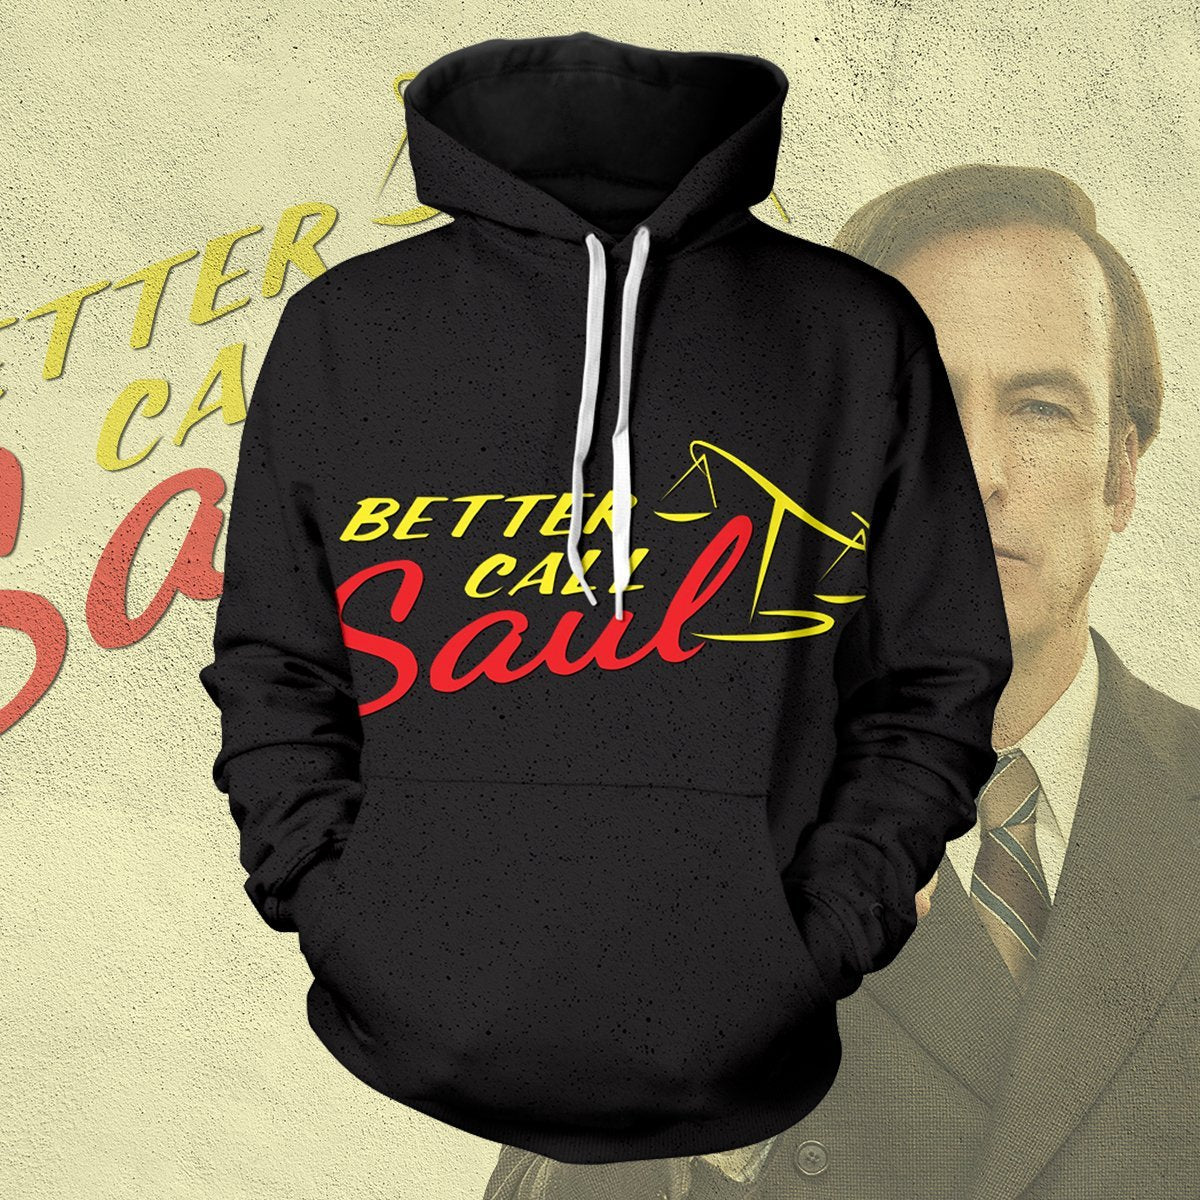 Better Call Saul Unisex Pullover Hoodie S